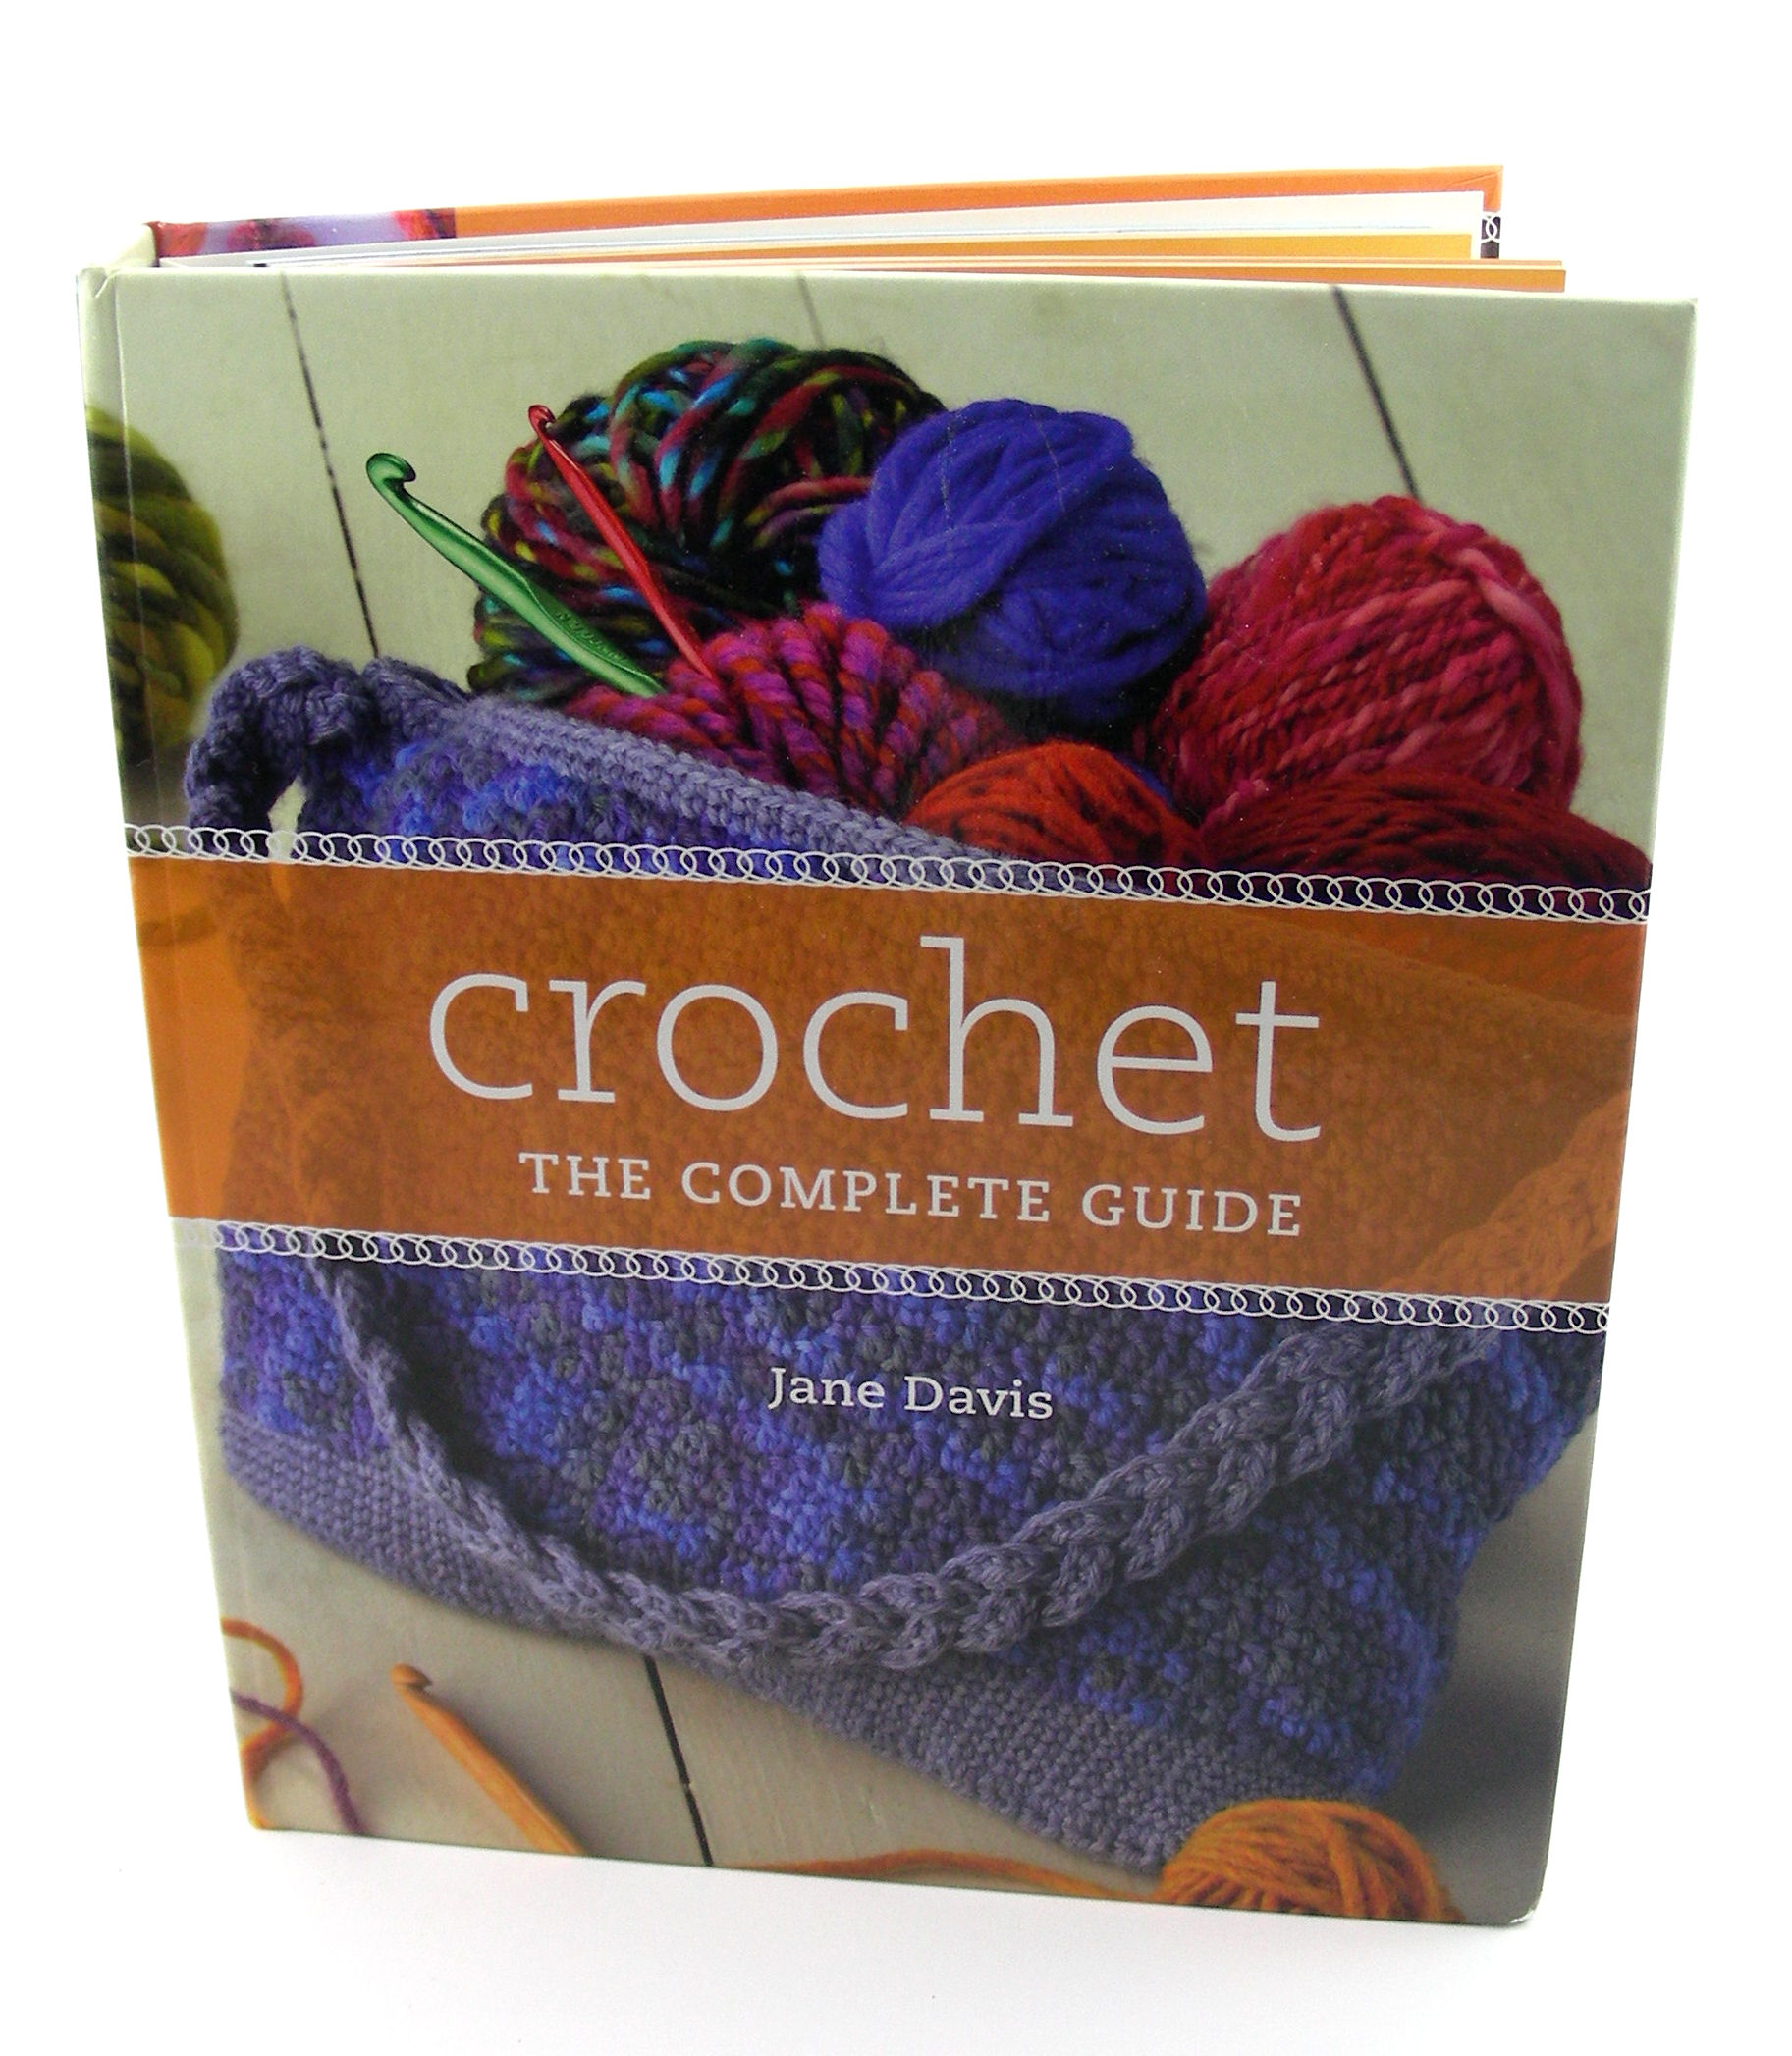 Crocheting Guide : Another book giveaway - Crochet: The Complete Guide - Judy Nolan